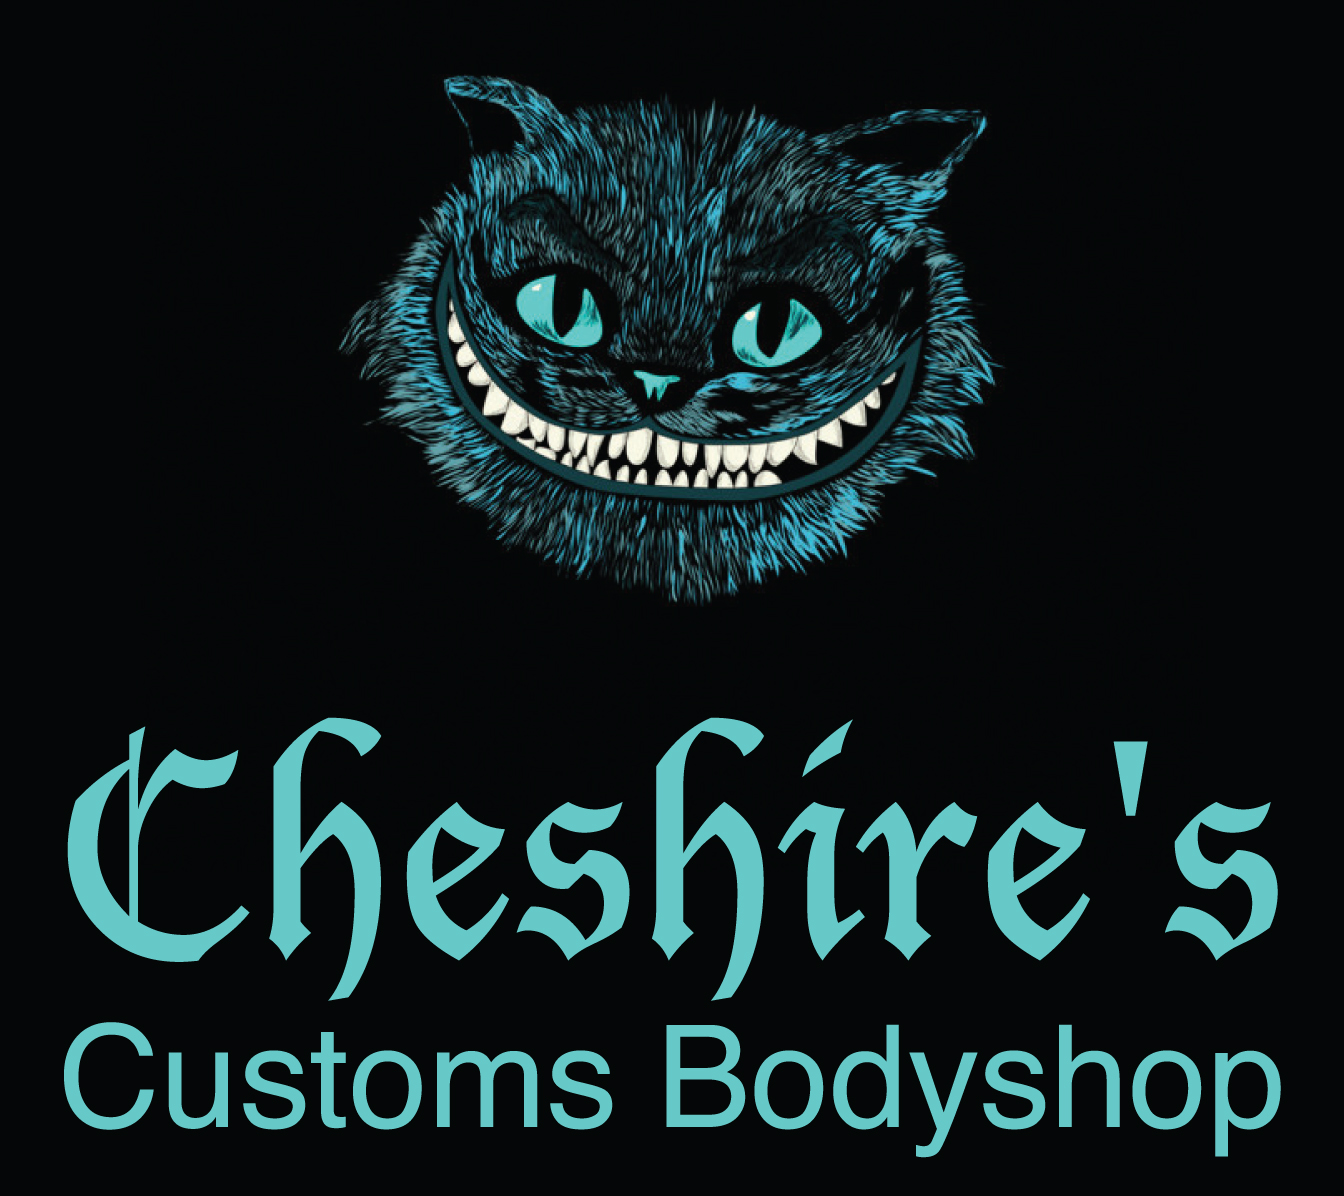 Cheshire Customs